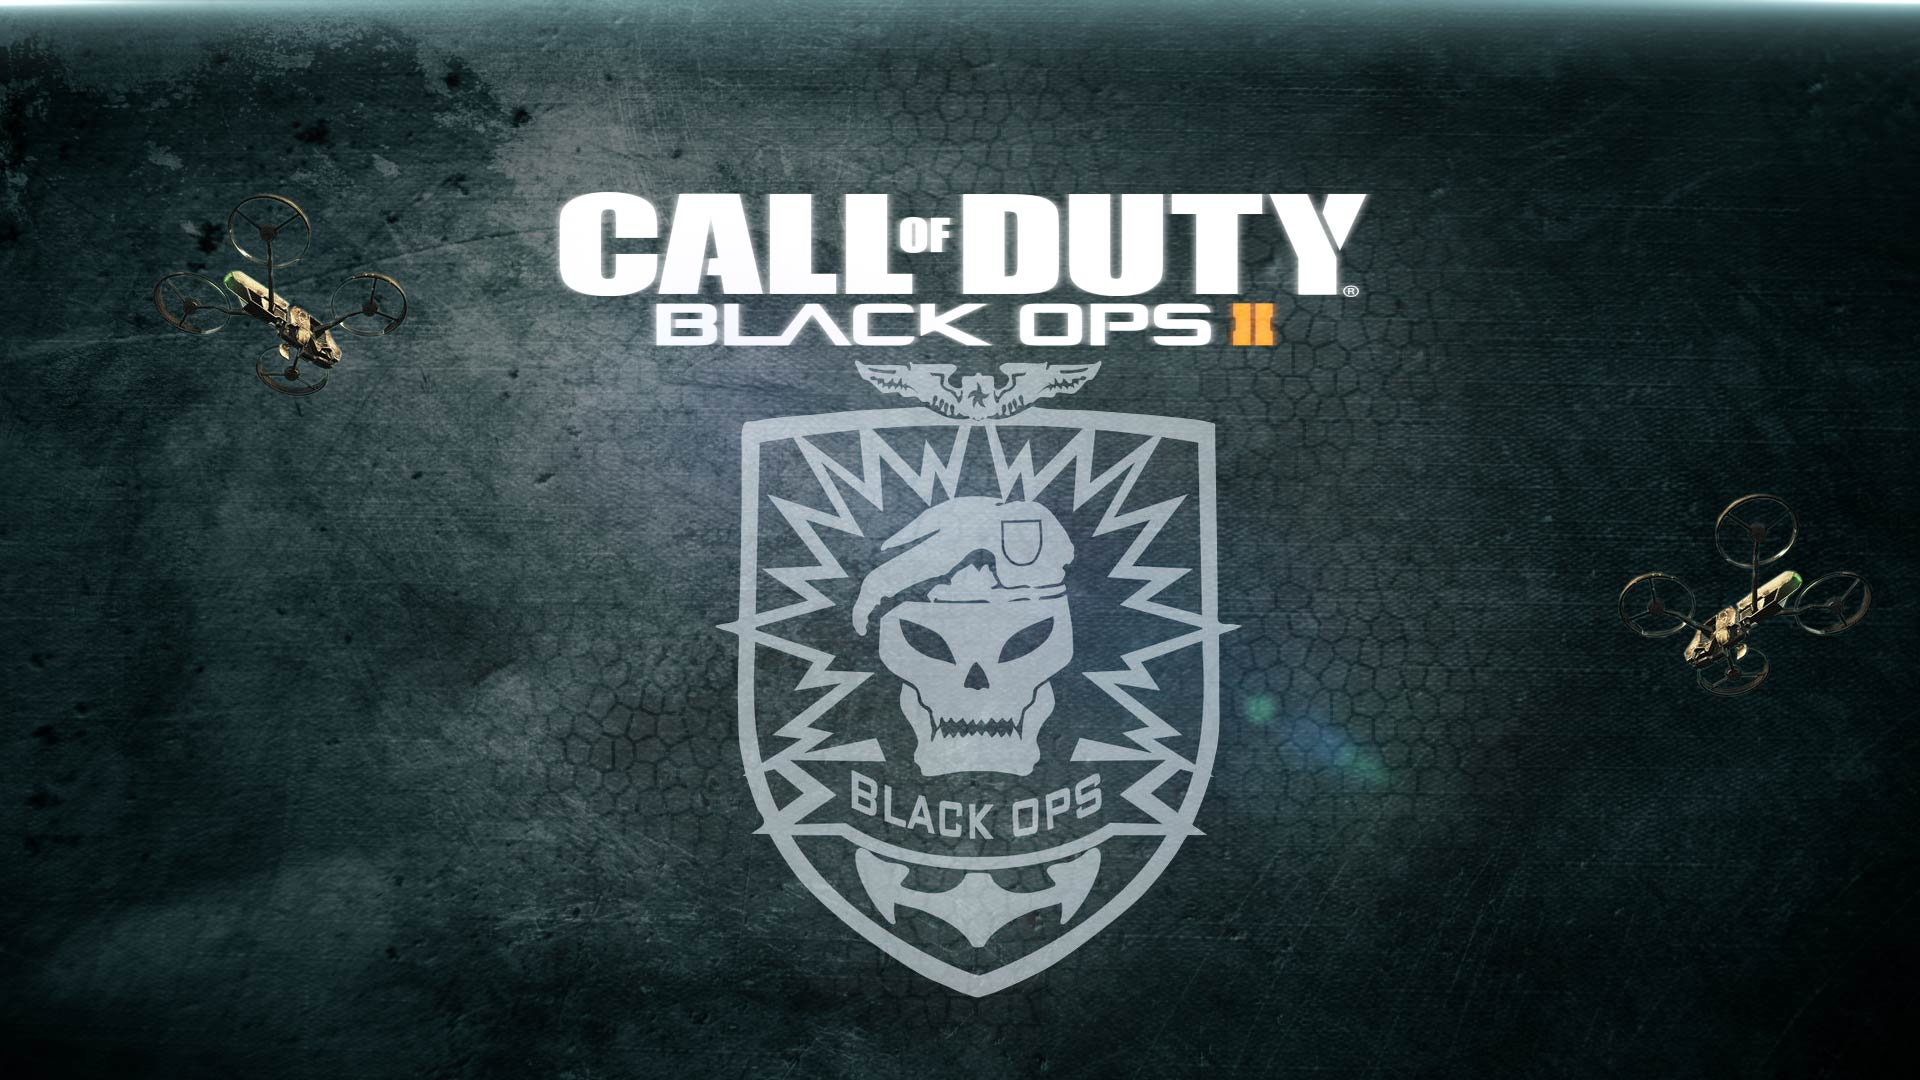 Cod black ops 2 wallpaper